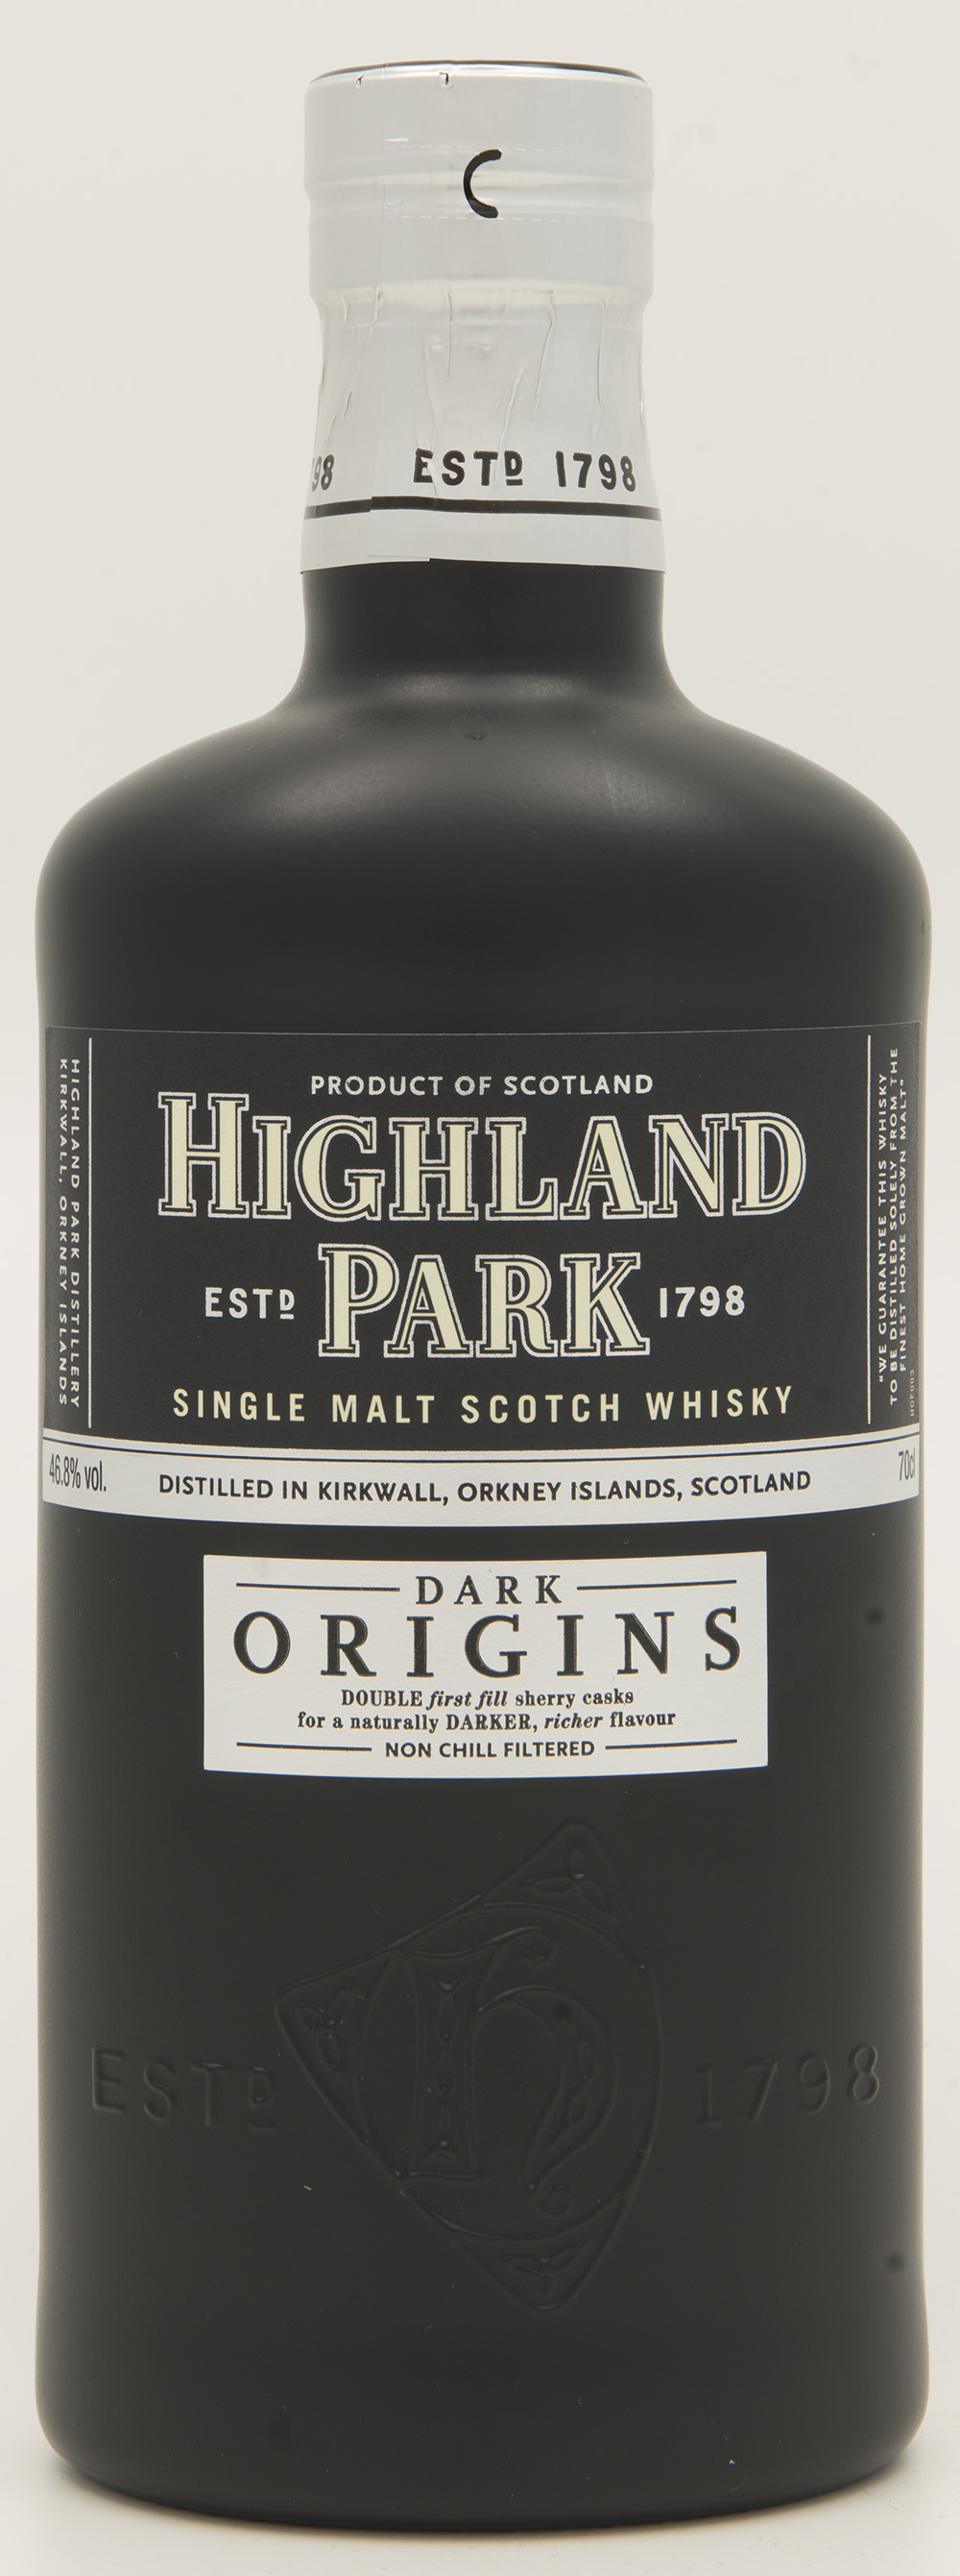 Billede: DSC_6438 Highland Park - Dark Origins - bottle front.jpg